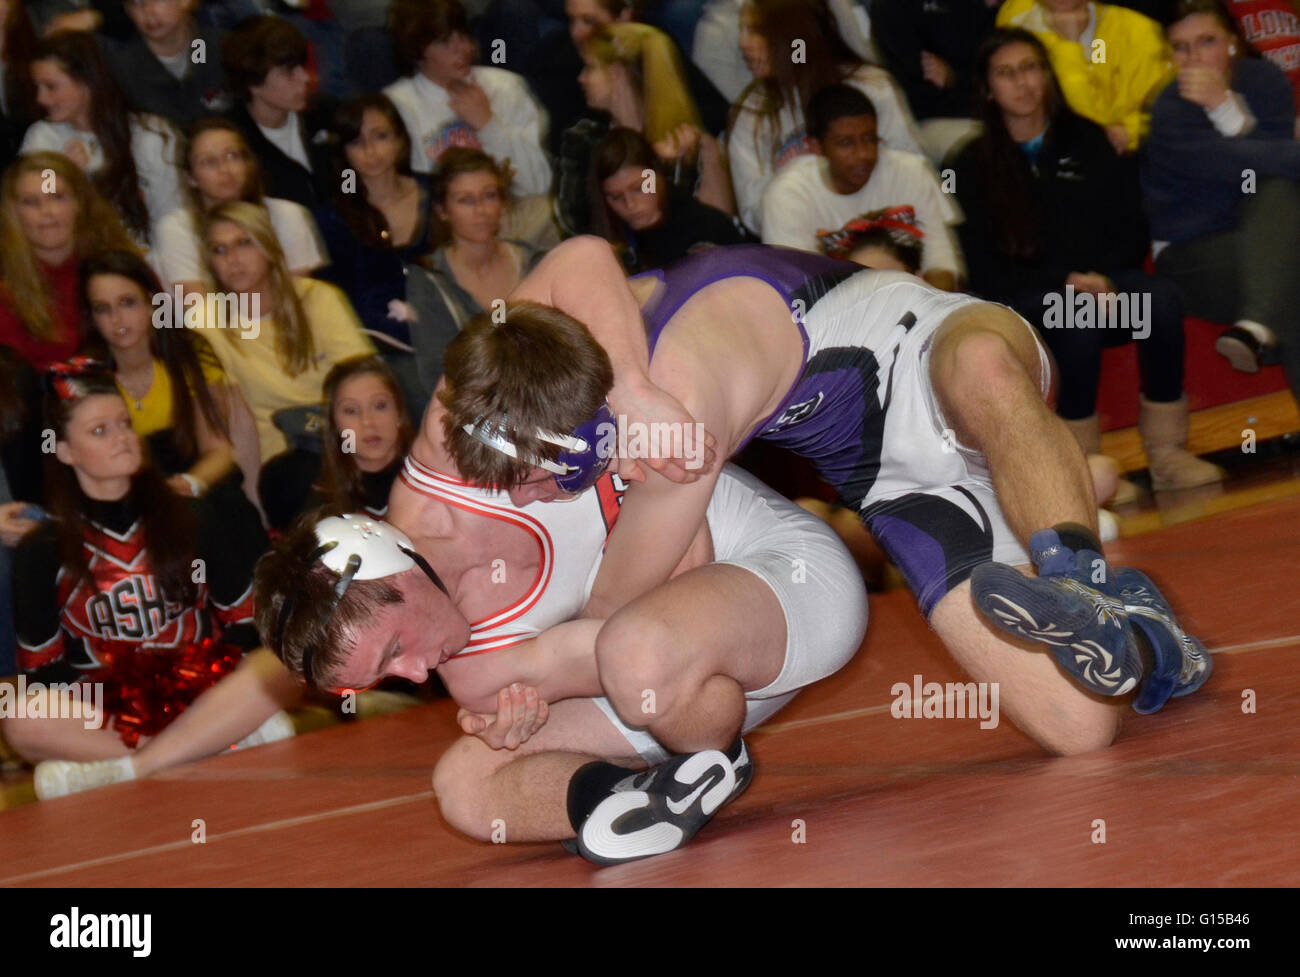 High school wrestling nel Crownsville, Maryland Immagini Stock